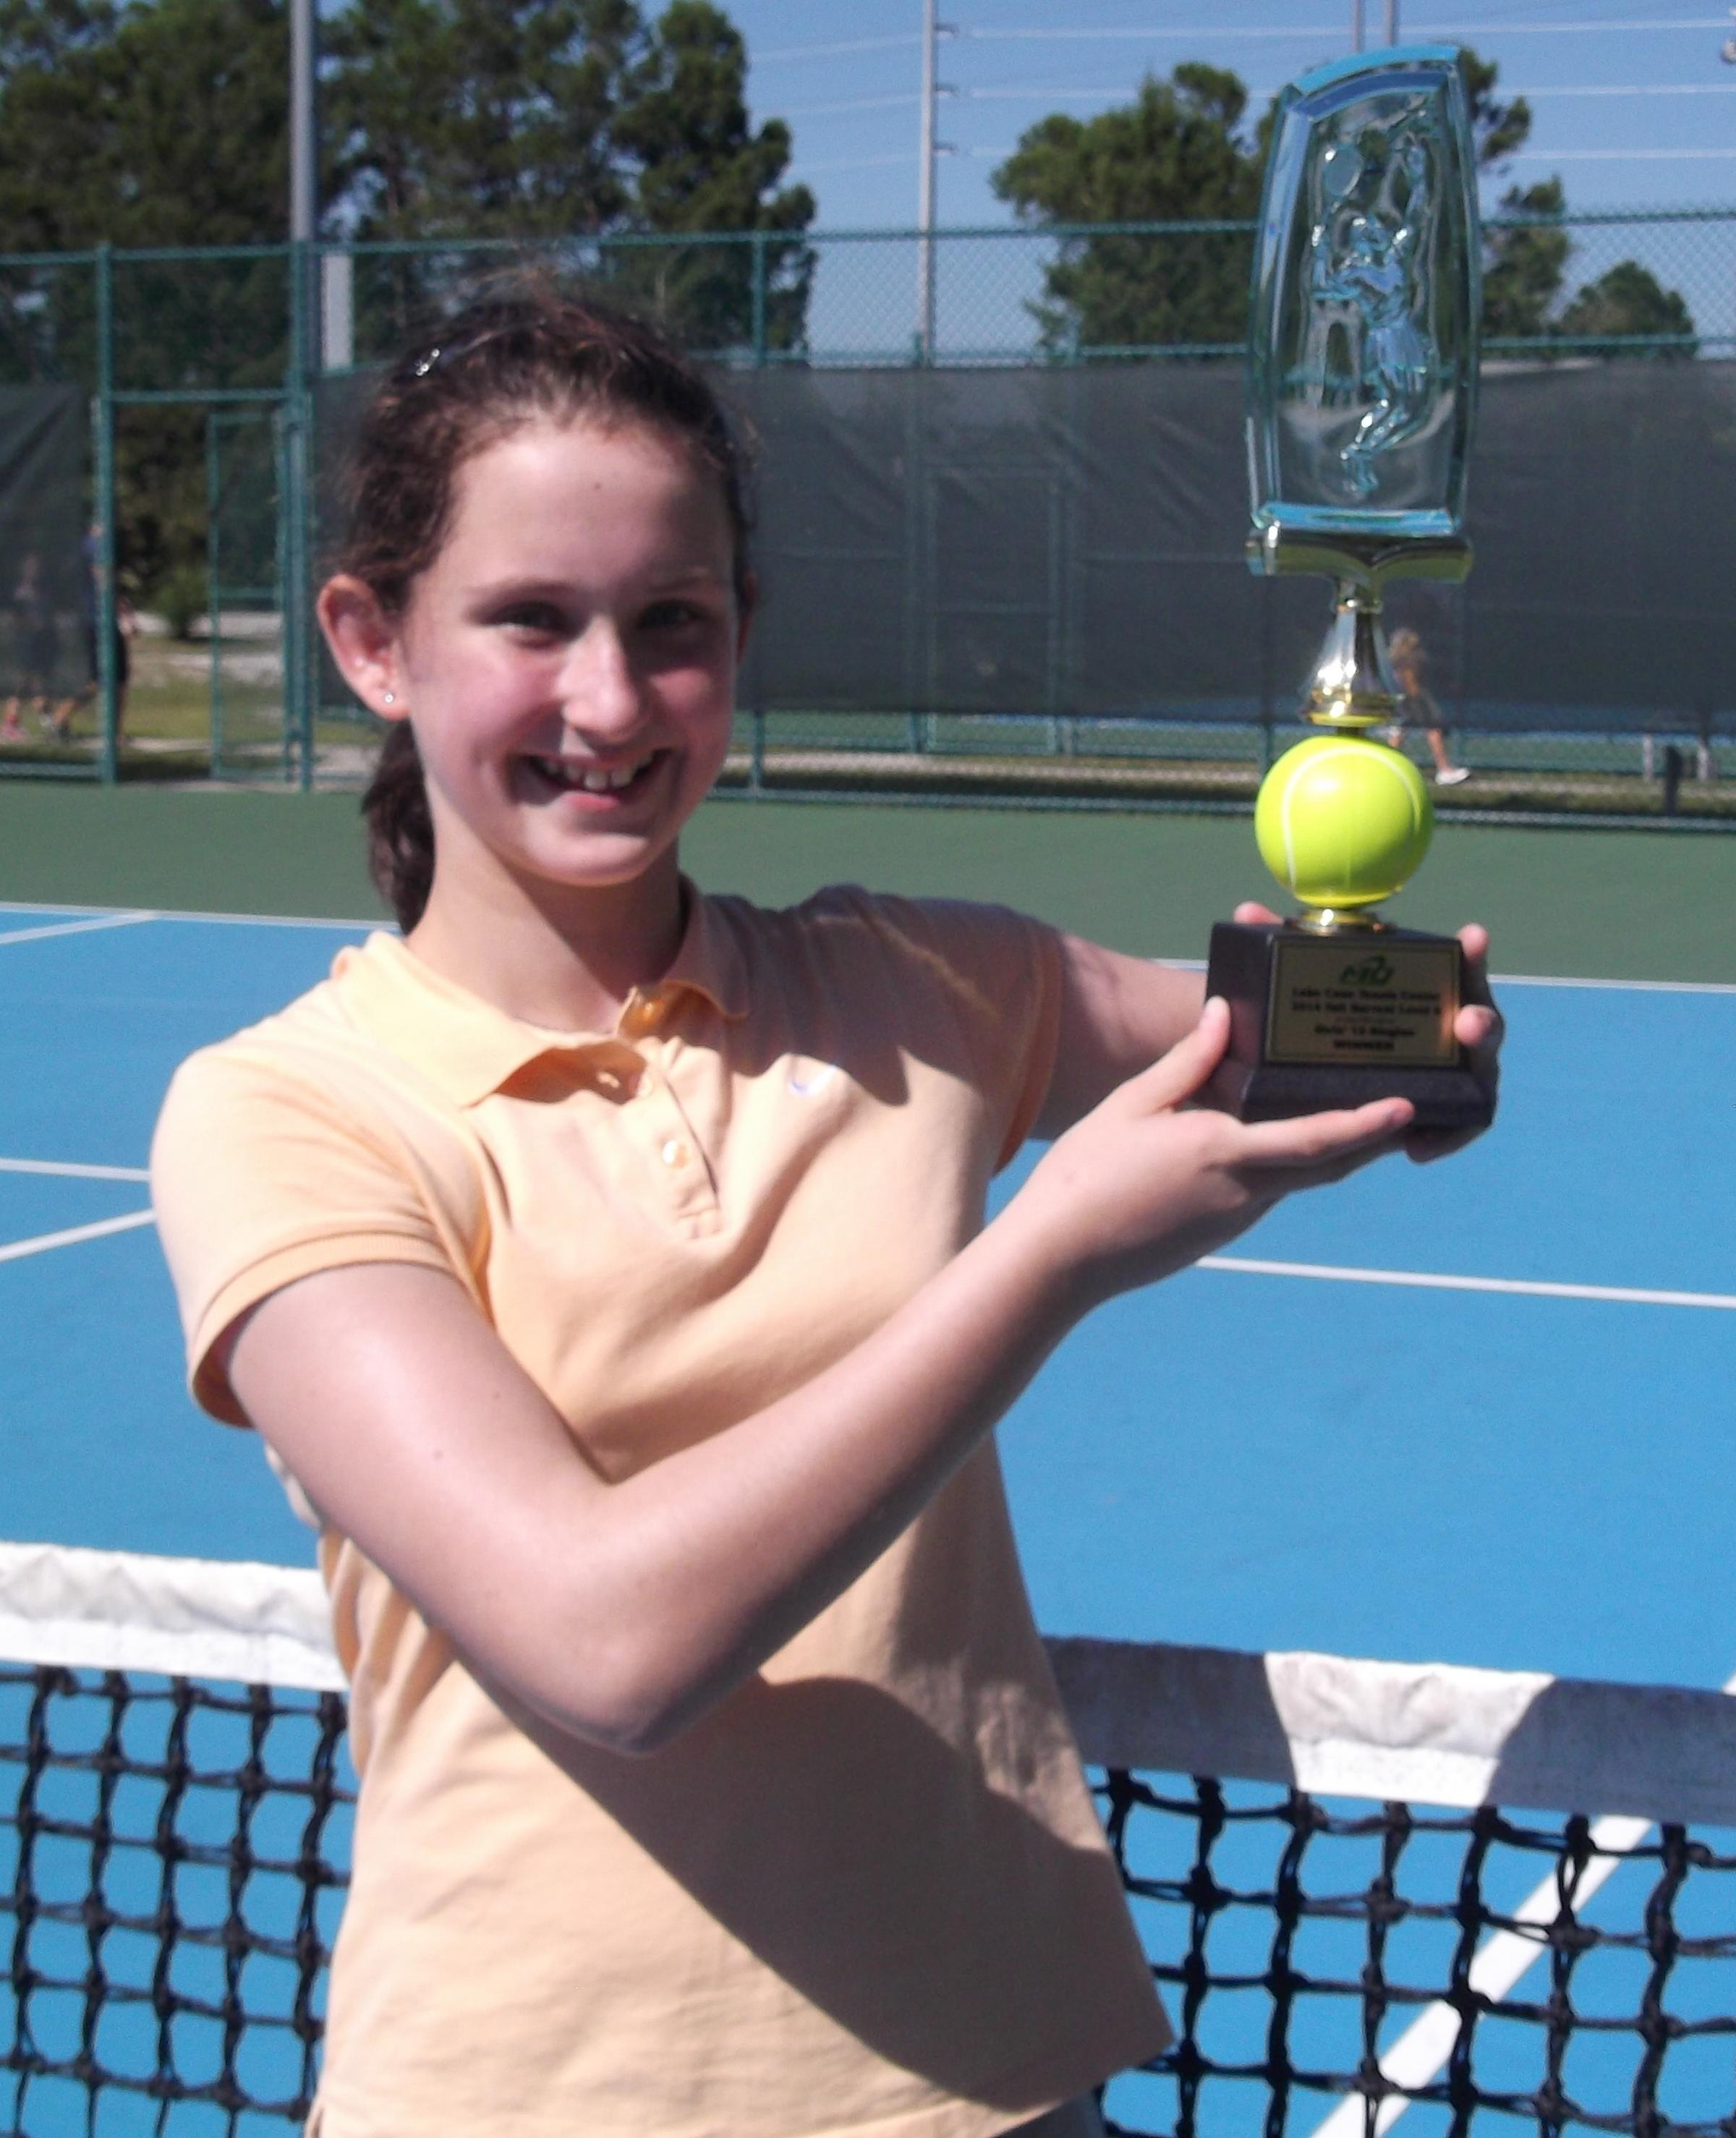 Natalie Flinn proudly displays her trophy after winning the Lake Cane Championships in Orlando, Florida